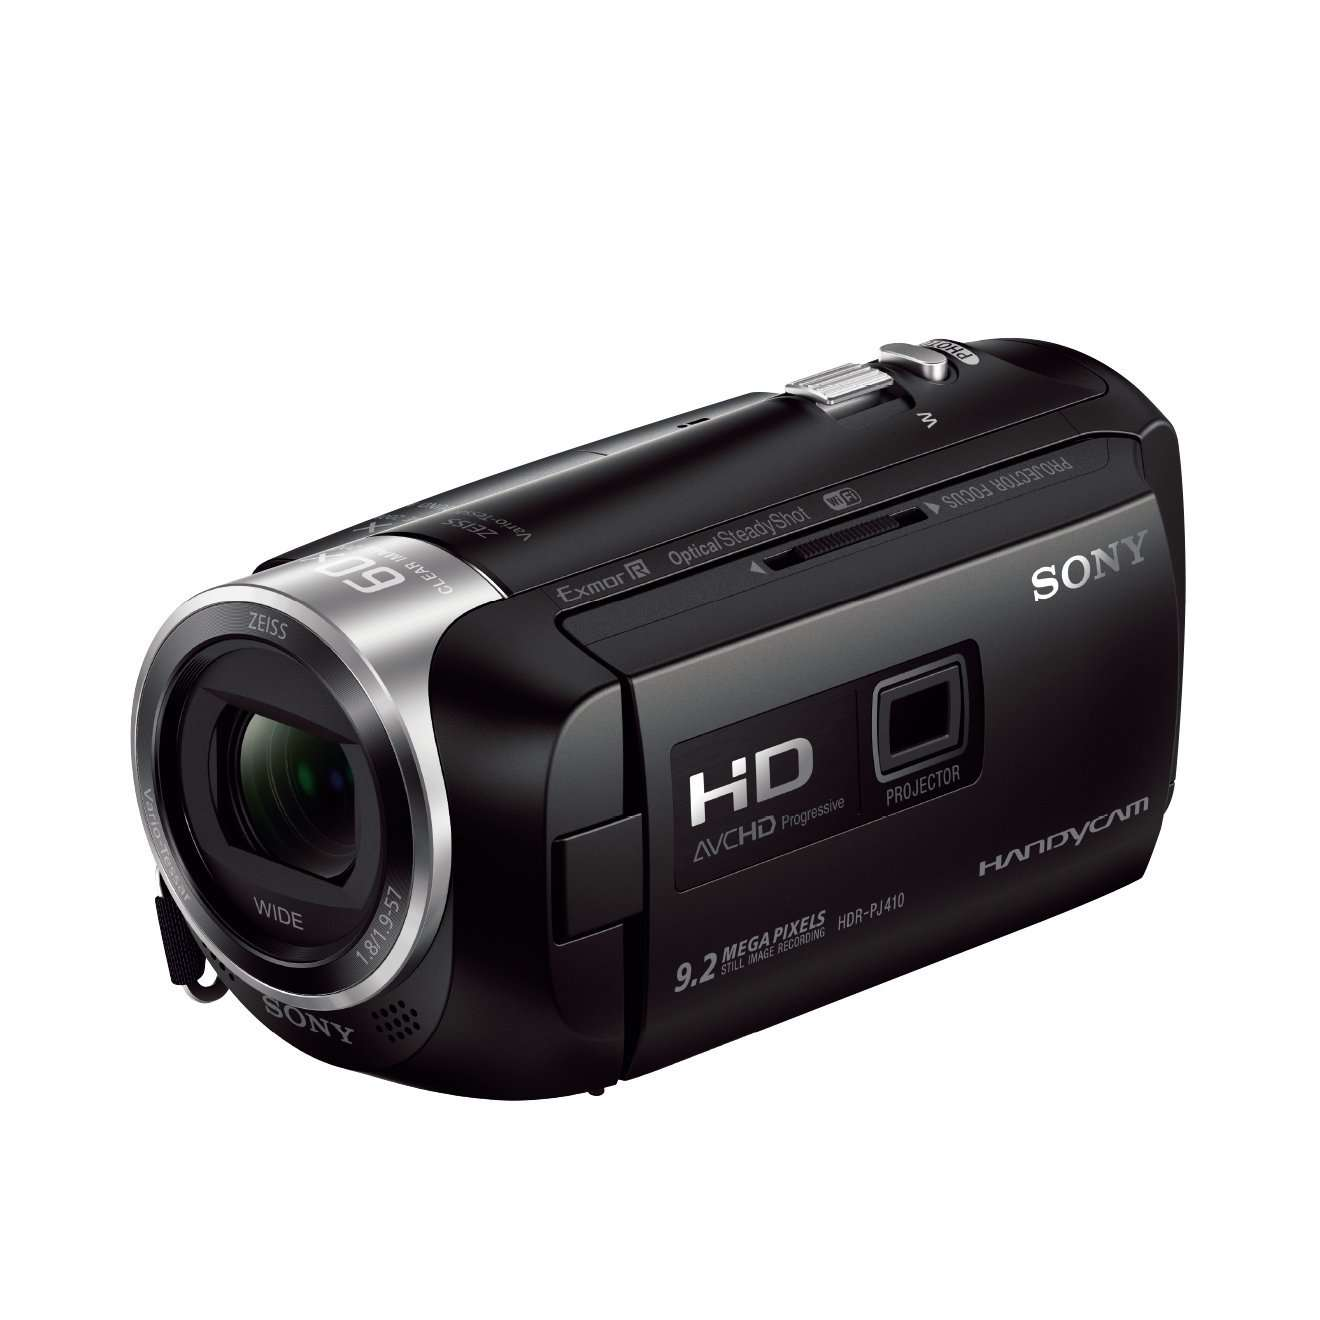 Sony HDR-PJ410 Full HD Video Recording Handycam Camcorder with Built-in Projector Black